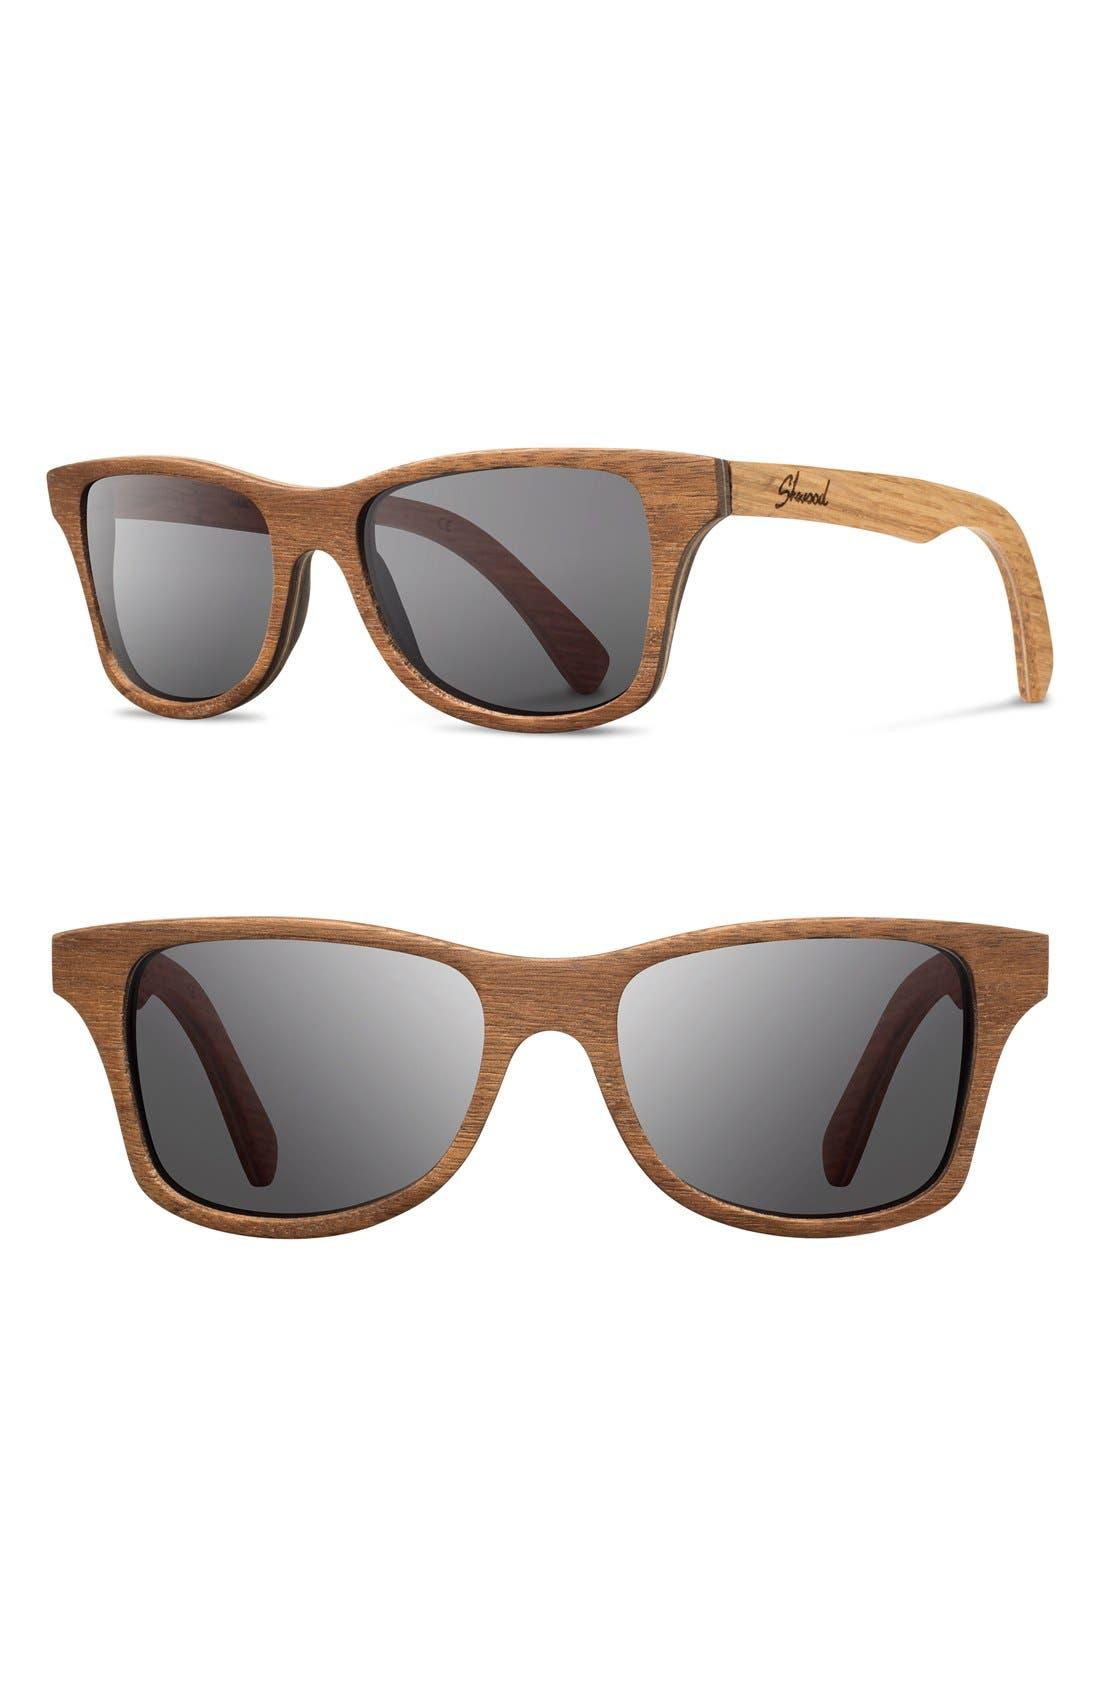 Main Image - Shwood 'Canby' 54mm Wood Sunglasses